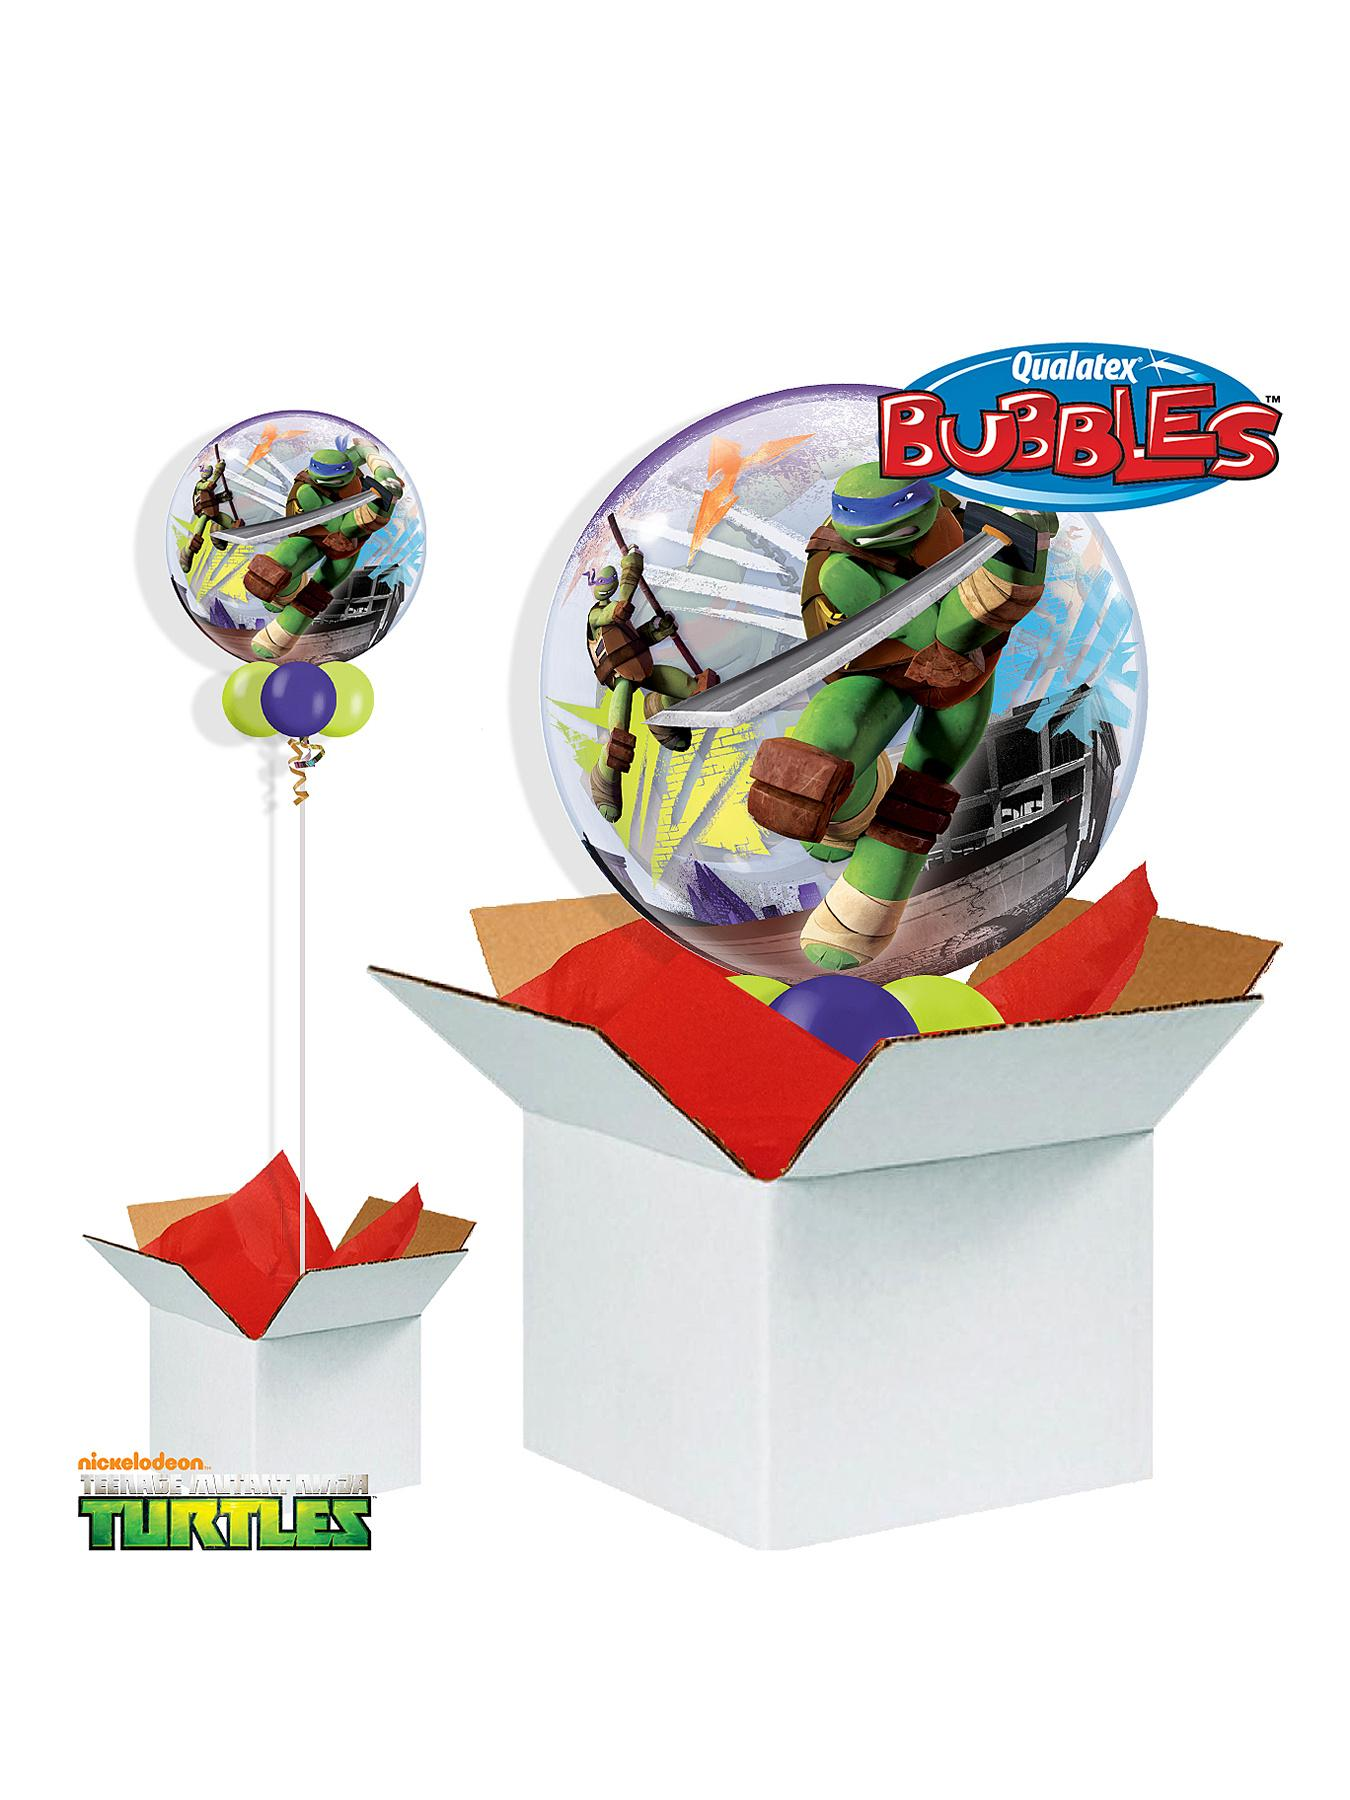 Teenage Mutant Ninja Turtles 22 inch Bubble Balloon